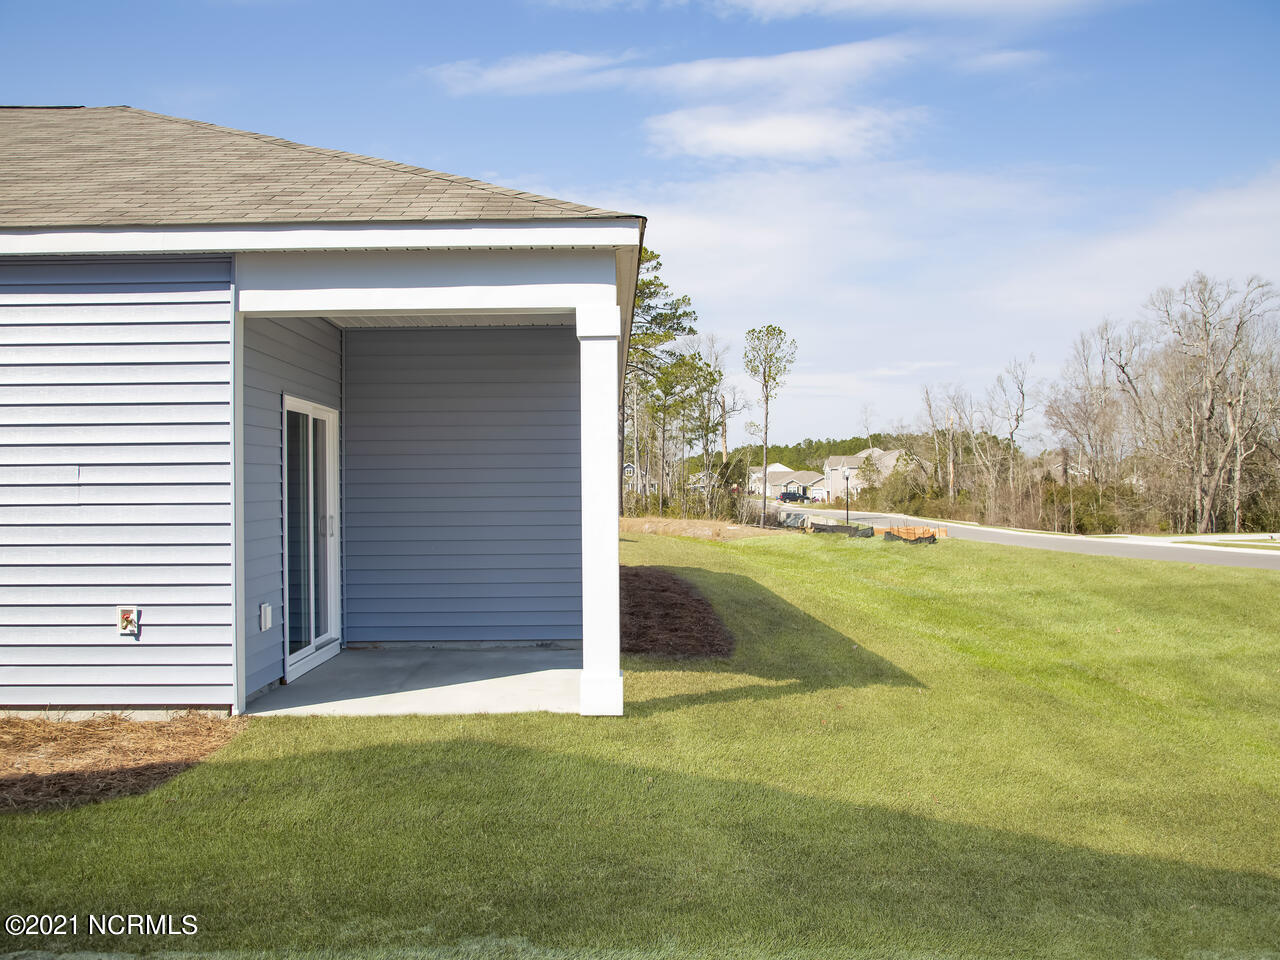 204 Windy Woods Way, Wilmington, North Carolina 28401, 3 Bedrooms Bedrooms, 6 Rooms Rooms,2 BathroomsBathrooms,Single family residence,For sale,Windy Woods Way,100275696